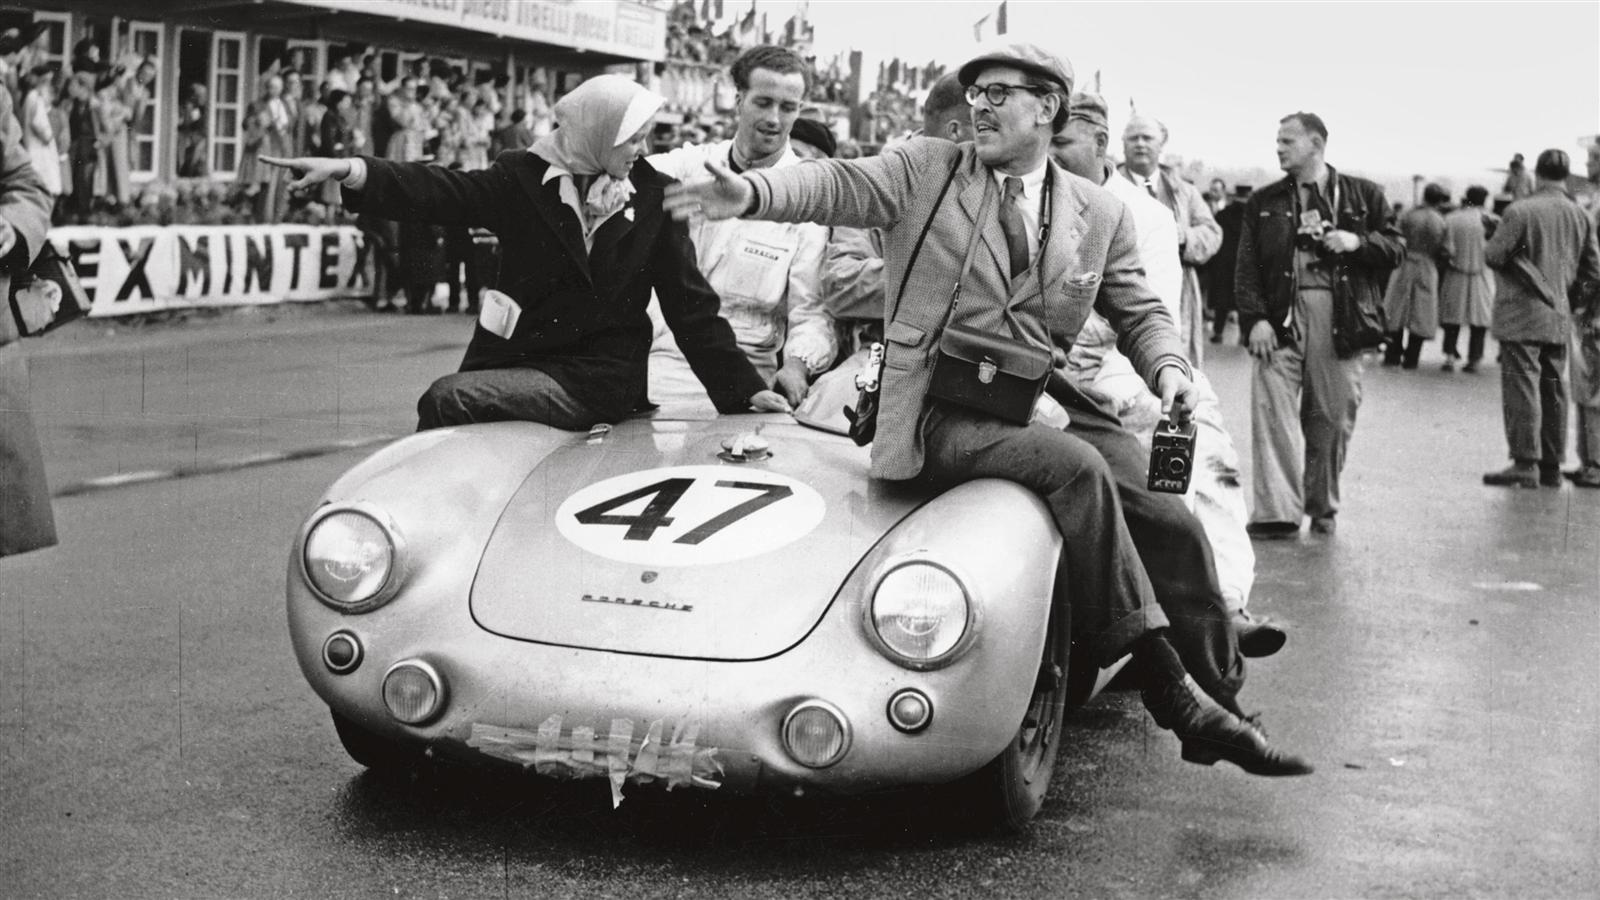 Huschke von Hanstein in the Porsche 550 Syder